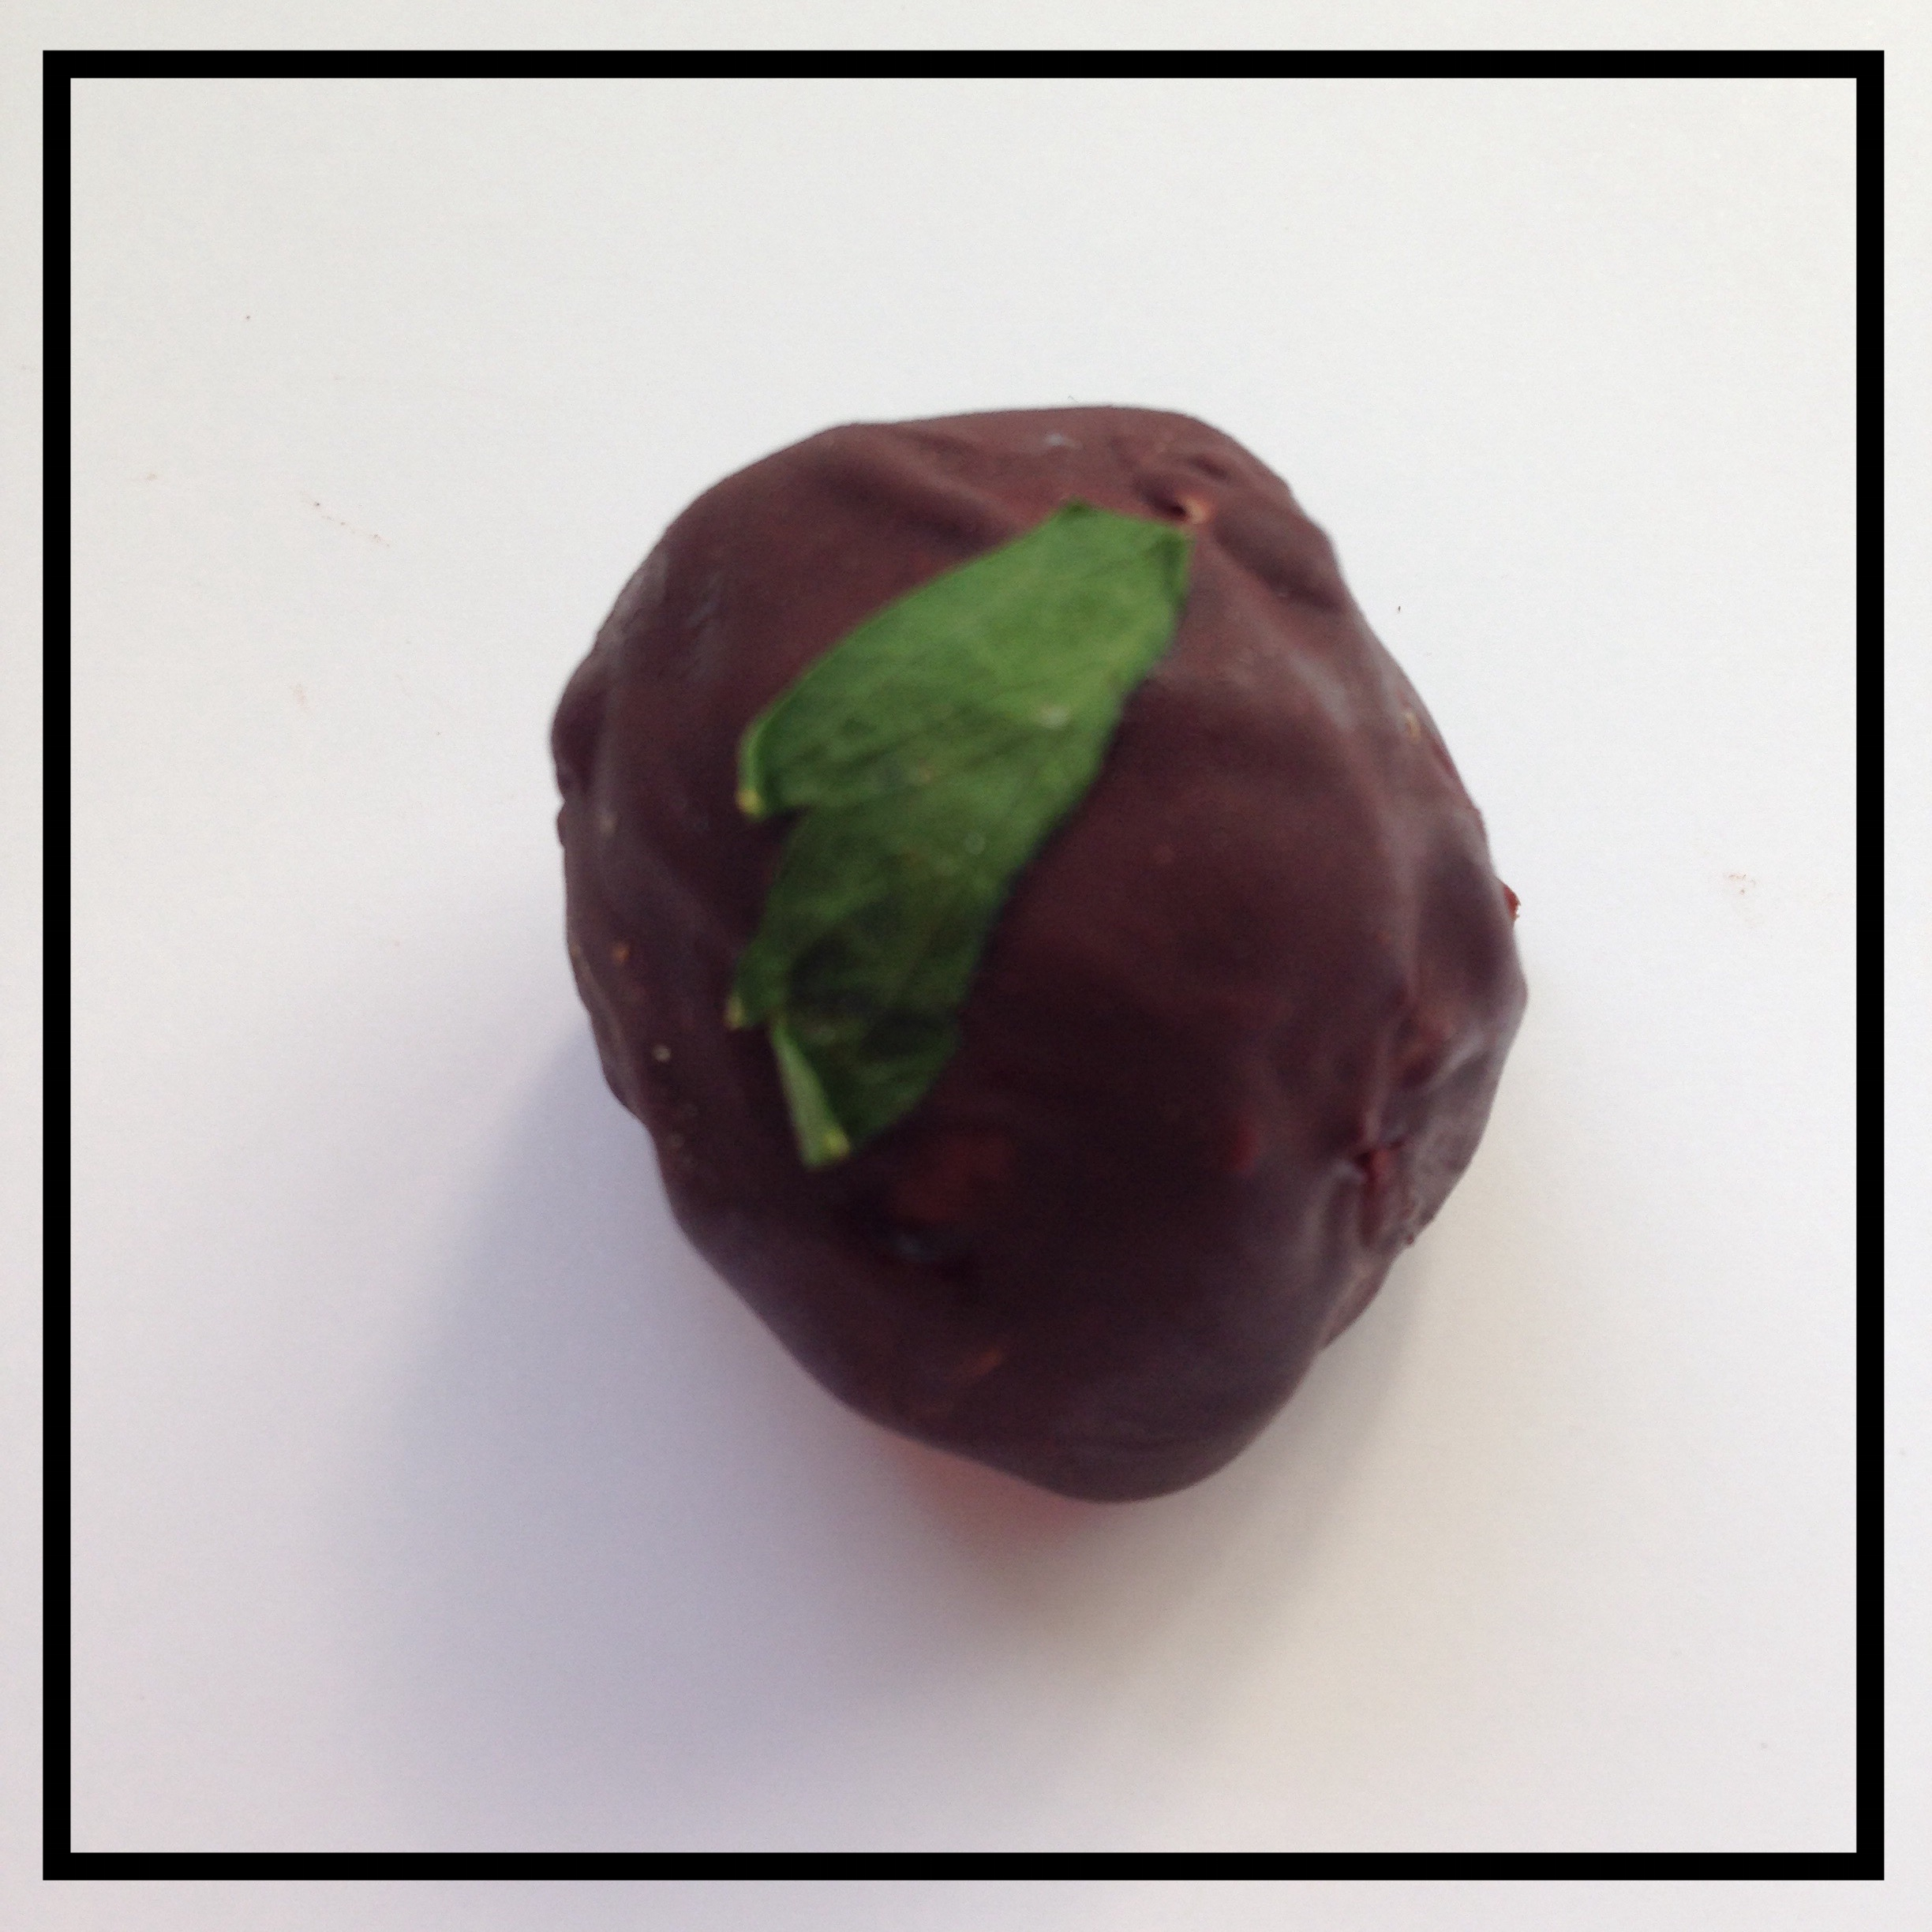 MINT   Chocolate ganache infused with garden mint